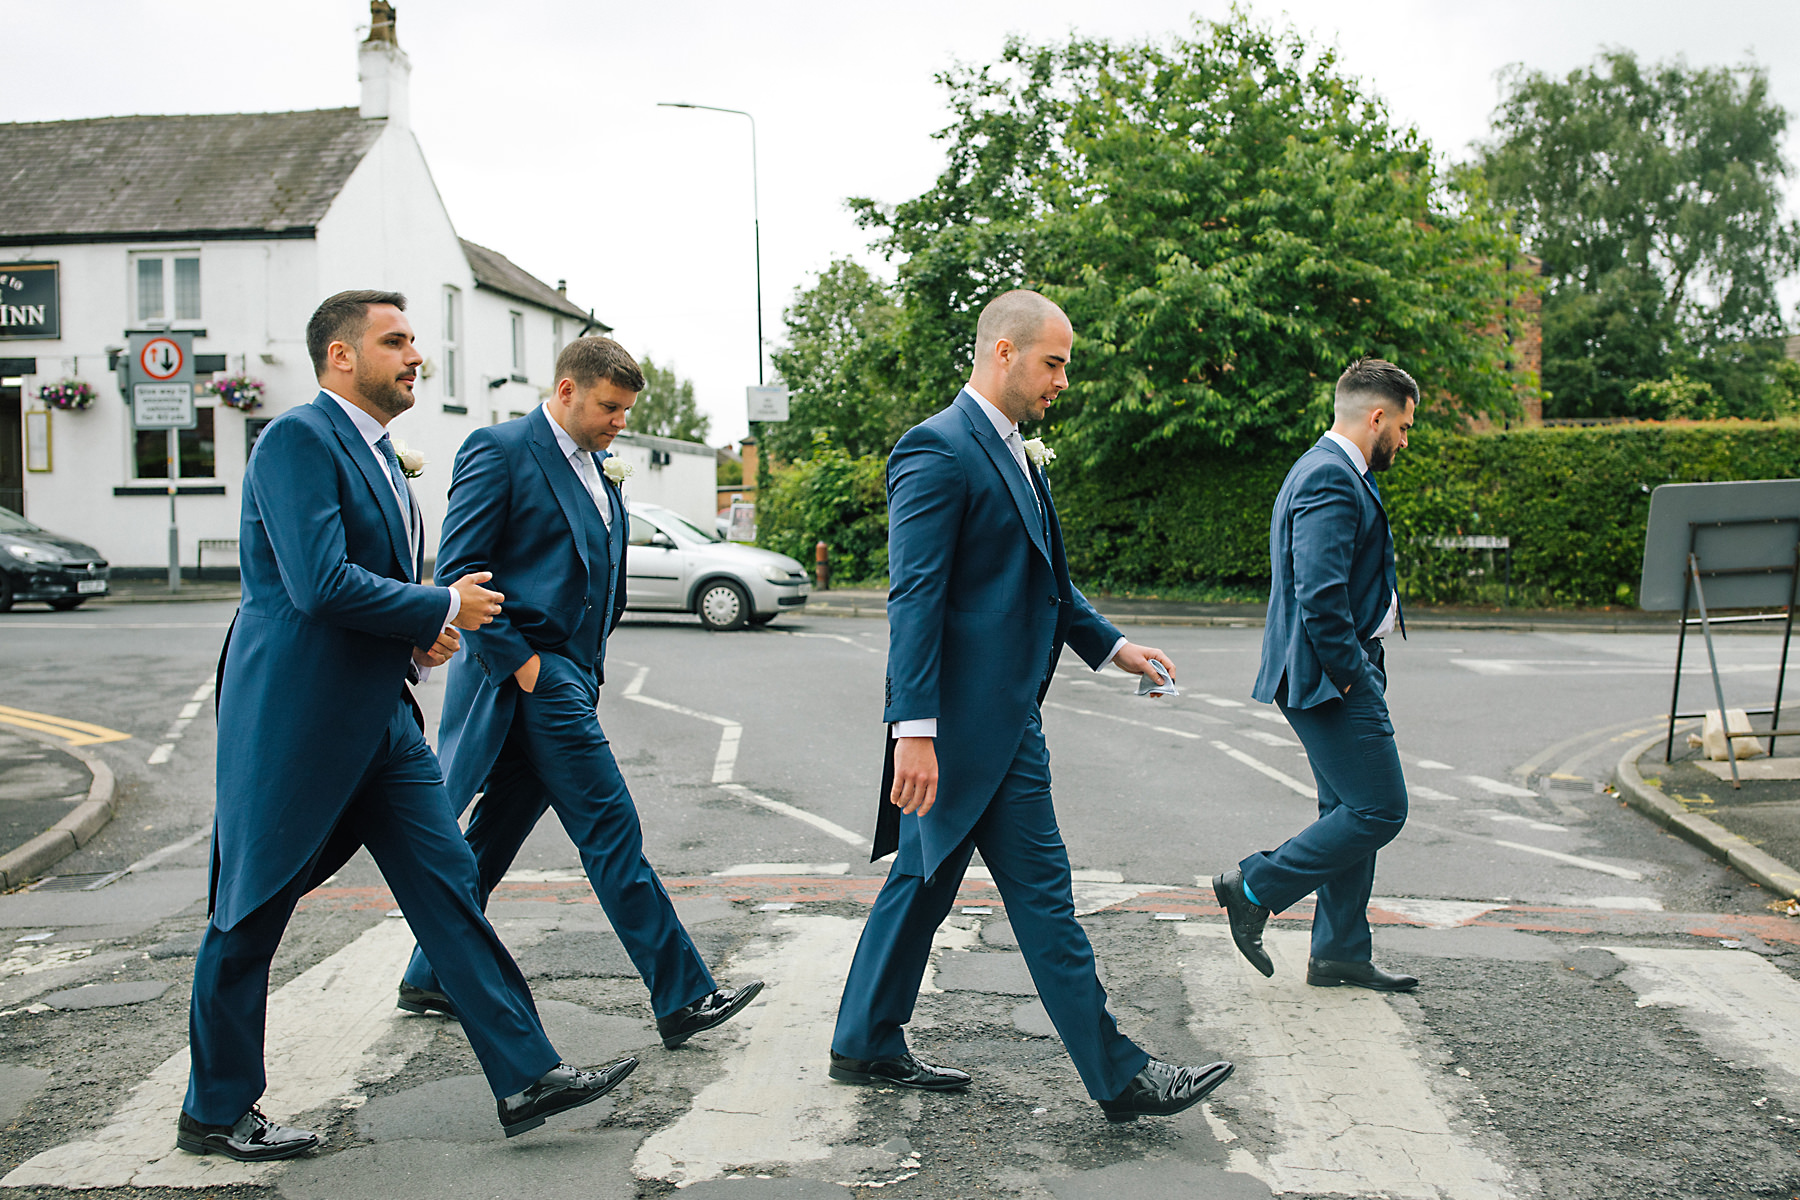 abbey road groomsmen photo